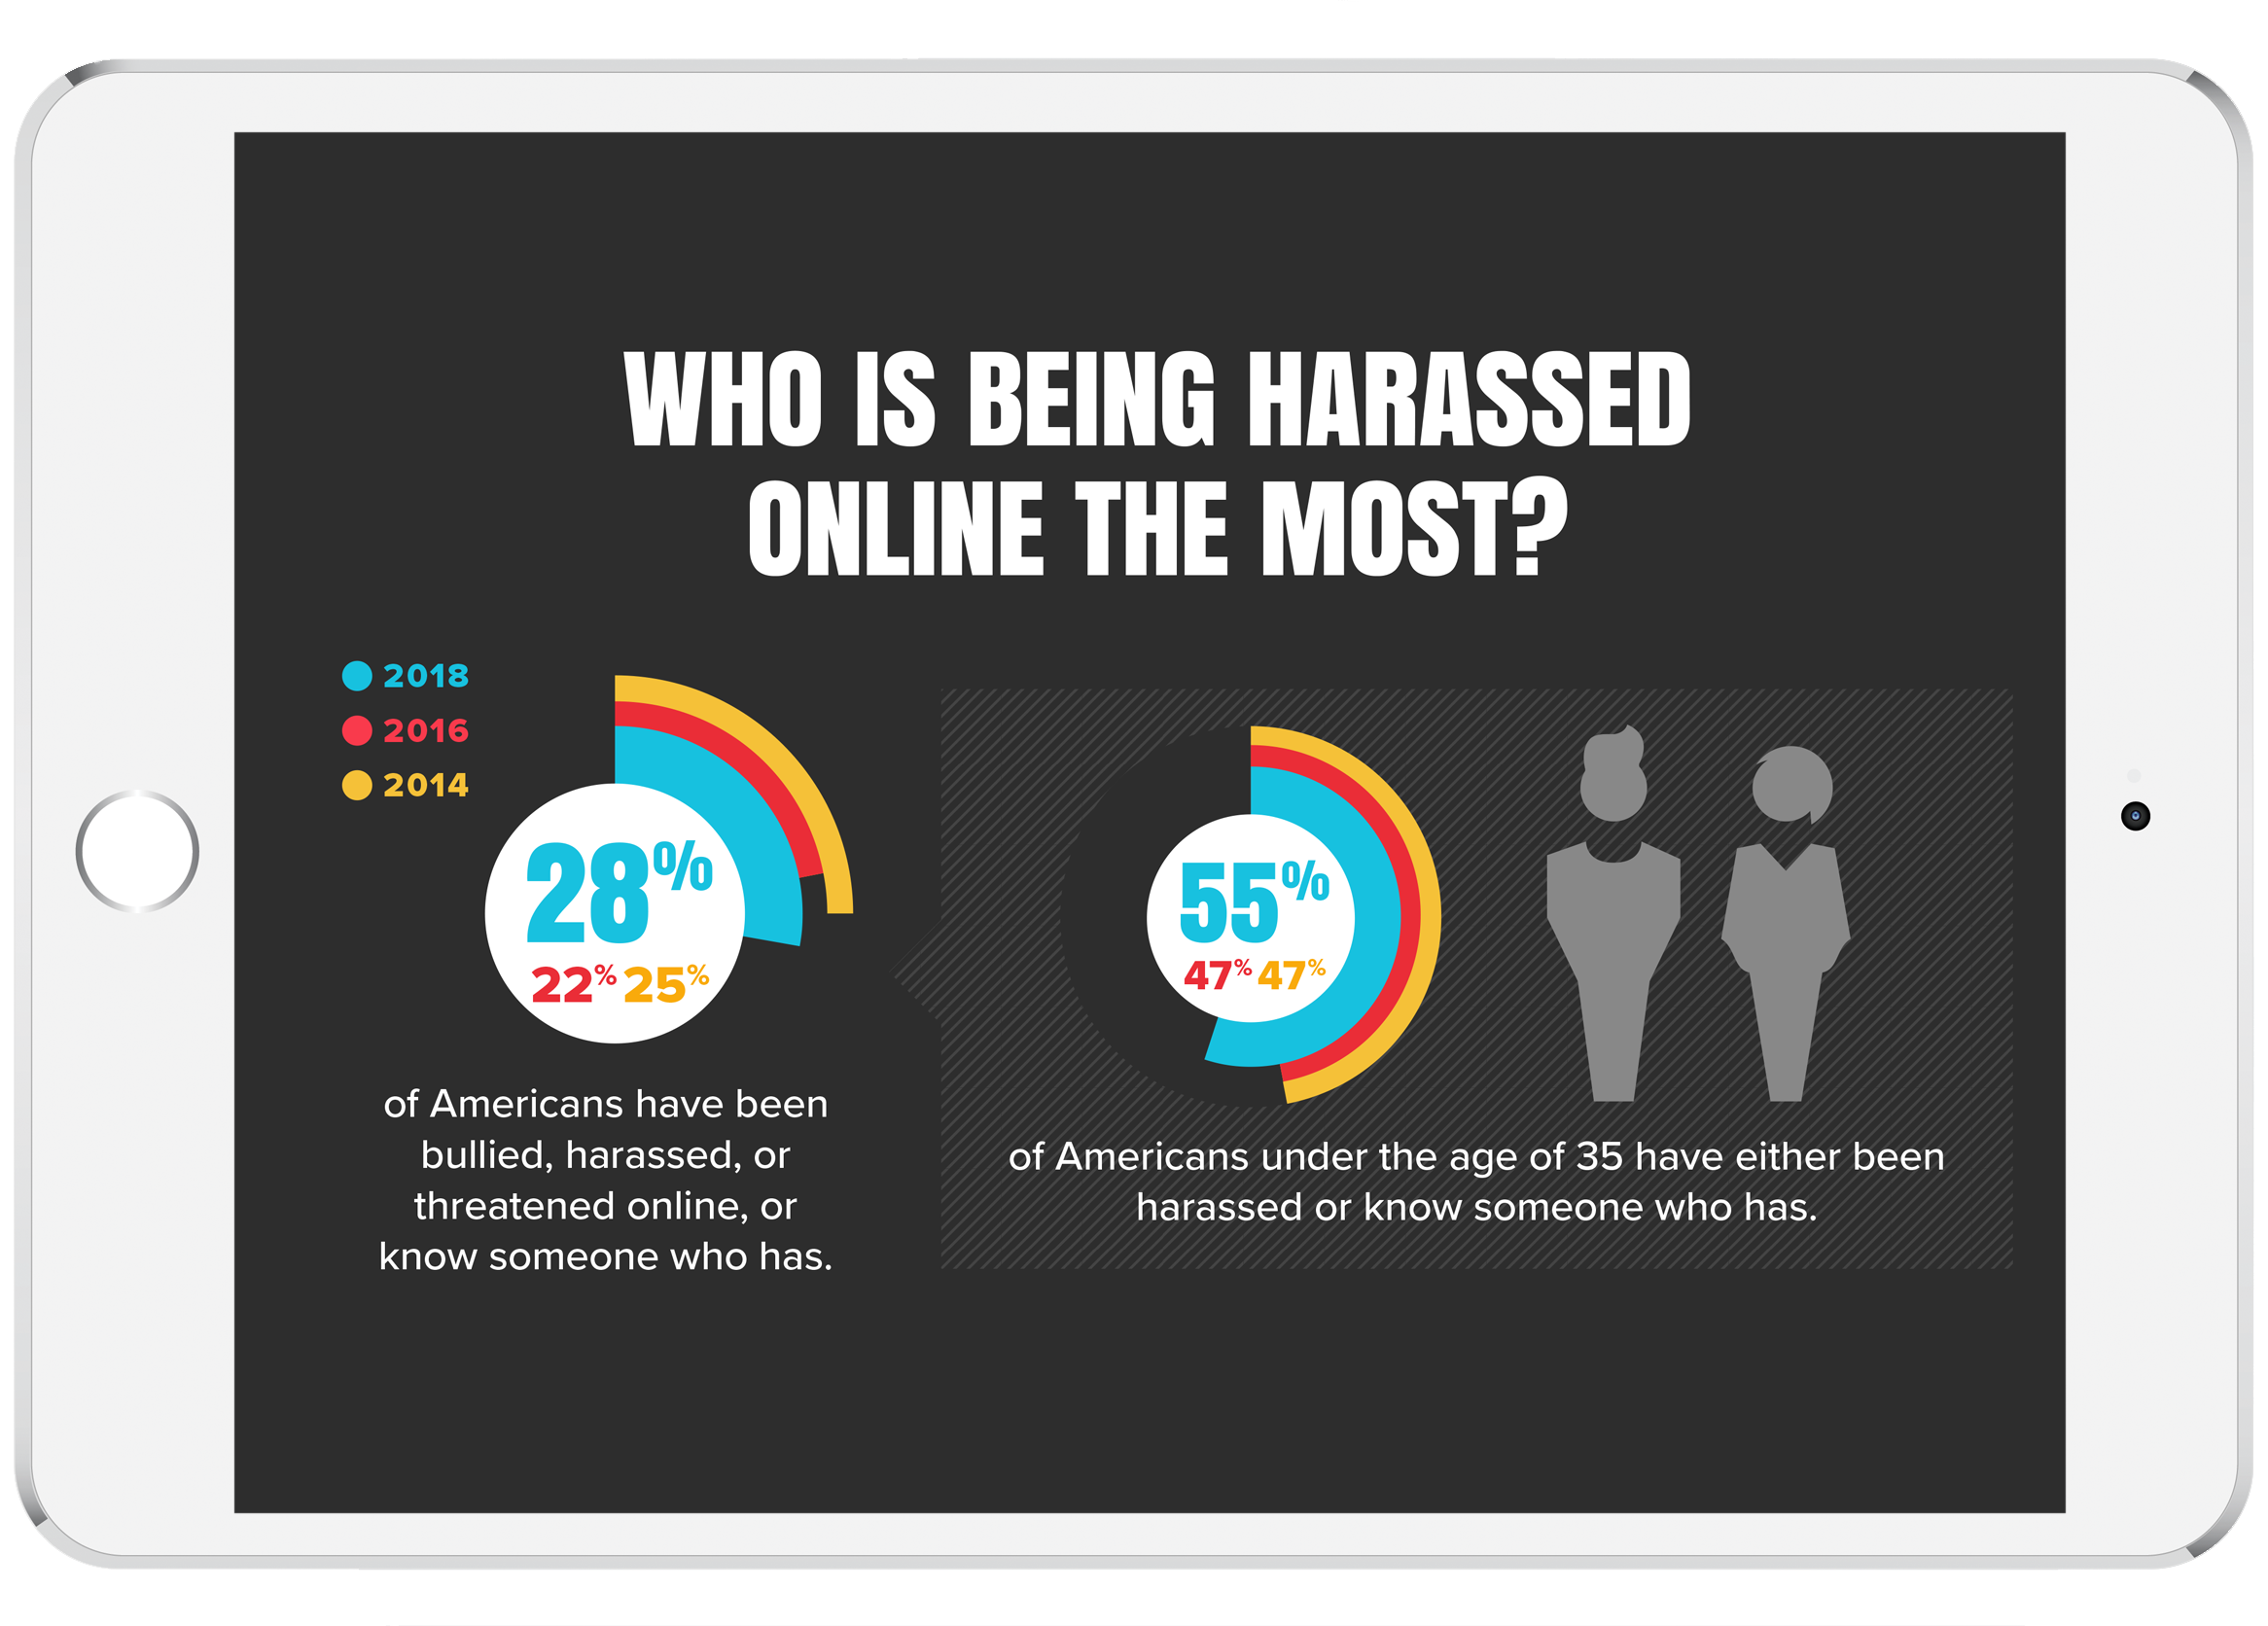 Online Harassment in 2018